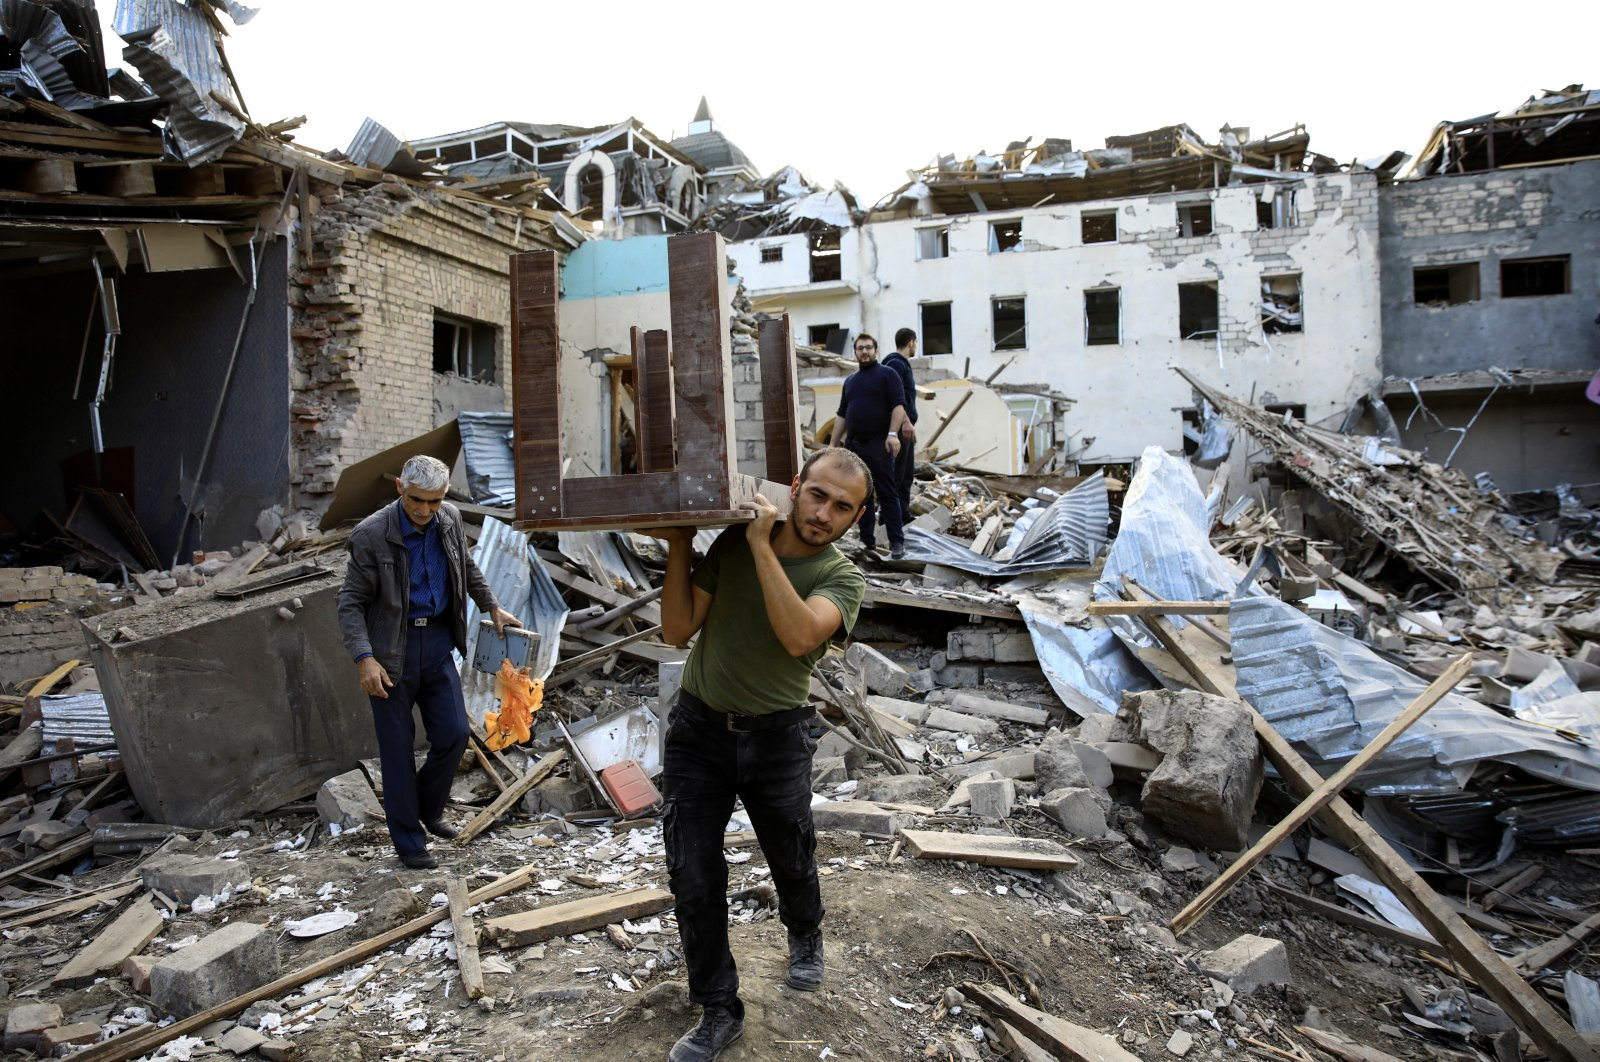 A man carries a table away from ruins at a blast site hit by a rocket during the fighting over the breakaway region of Nagorno-Karabakh in the city of Ganja, Azerbaijan on Oct. 11, 2020. (Reuters Photo)